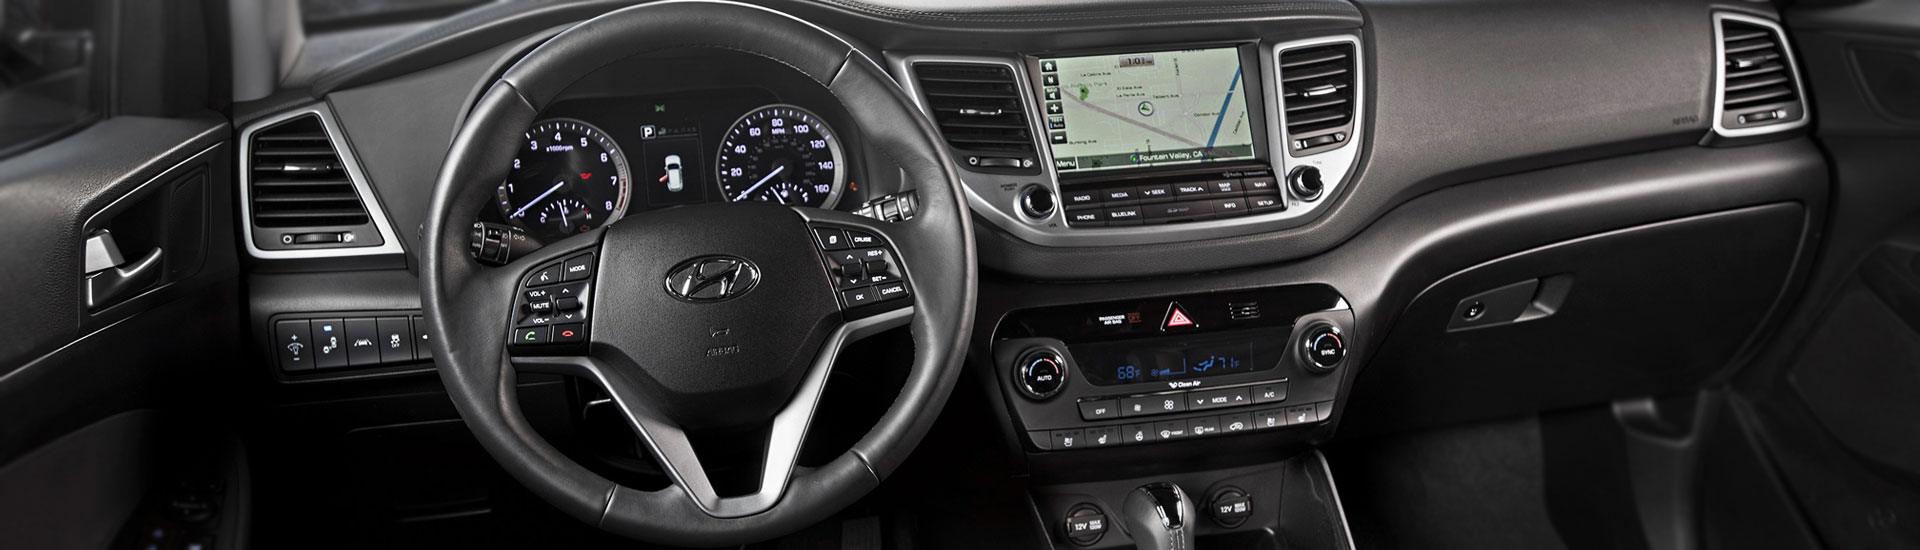 Hyundai Tucson Custom Dash Kits